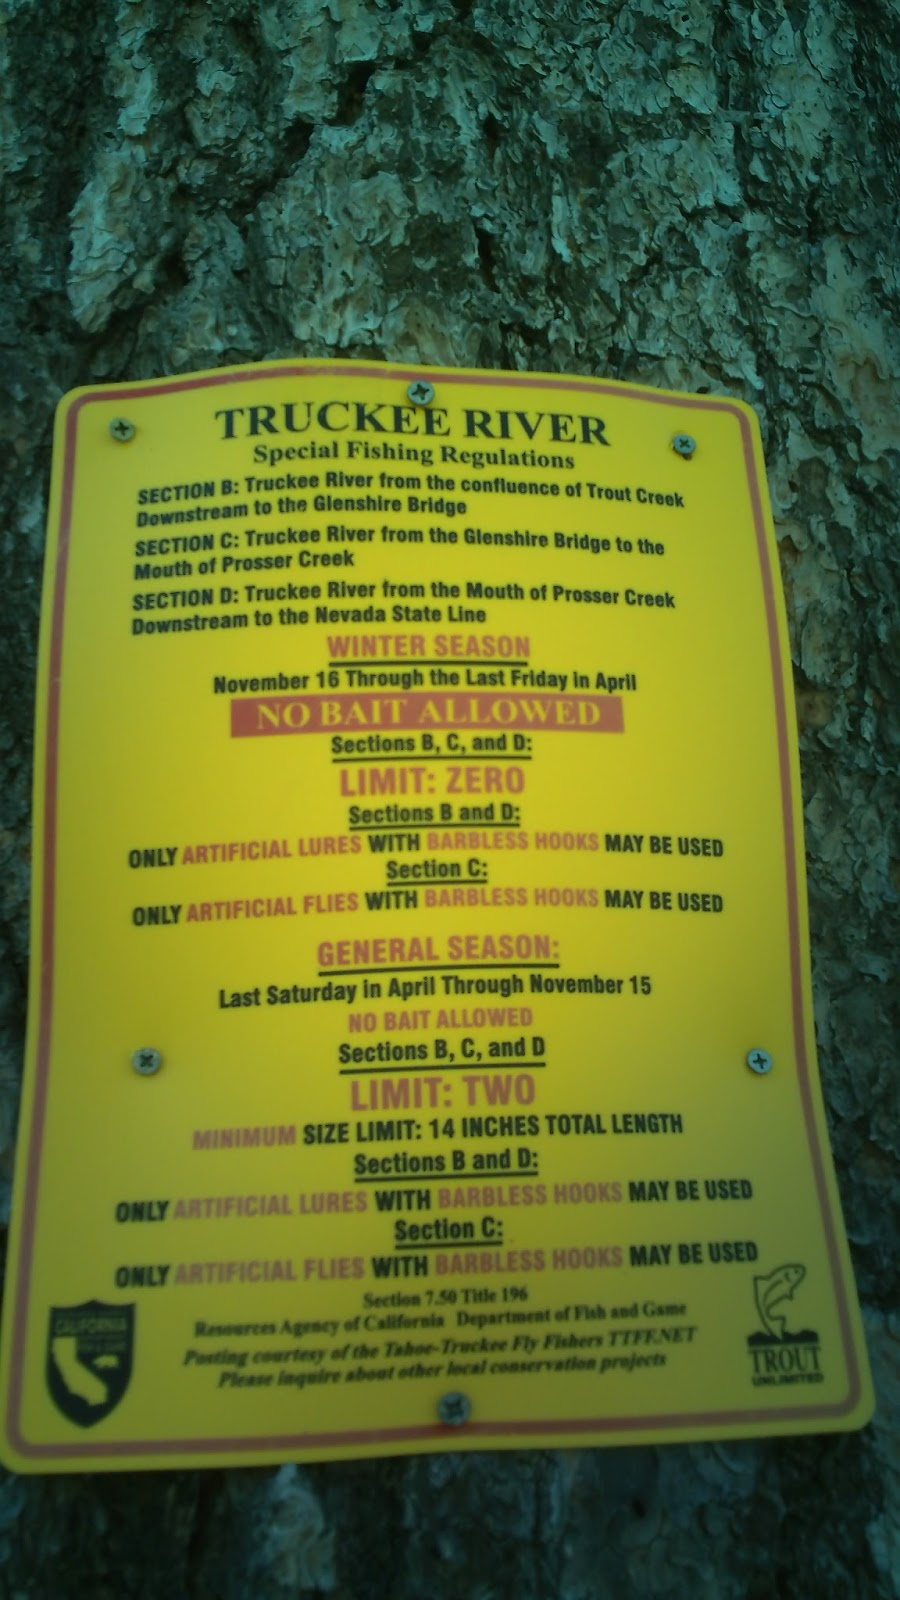 Scott hopper 39 s blog truckee river fishing regulations for Fishing license requirements